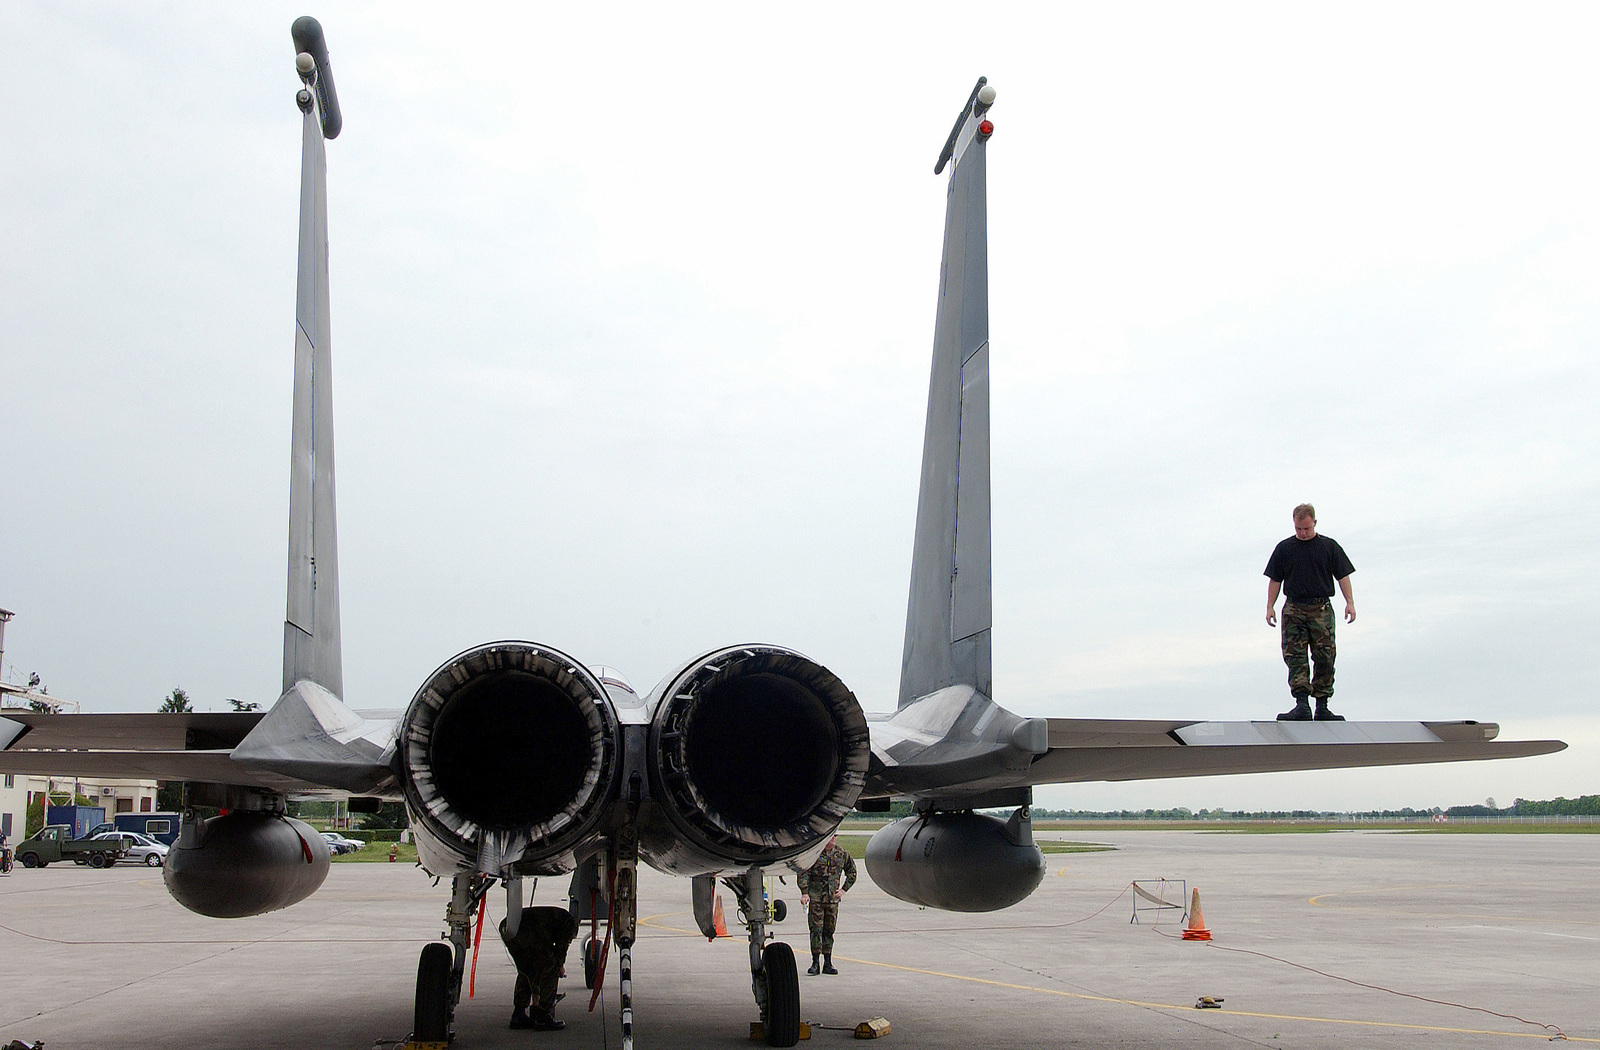 US Air Force (USAF) personnel assigned to the 493rd Fighter Squadron (FS), perform a post flight inspection of a F-15C Eagle aircraft on the flight line at Aviano Air Base (AB), Italy. The aircraft experienced mechanical problems with the landing gear causing an emergency landing at Aviano Air Base on its way from an air show in Bratislava, Slovakia